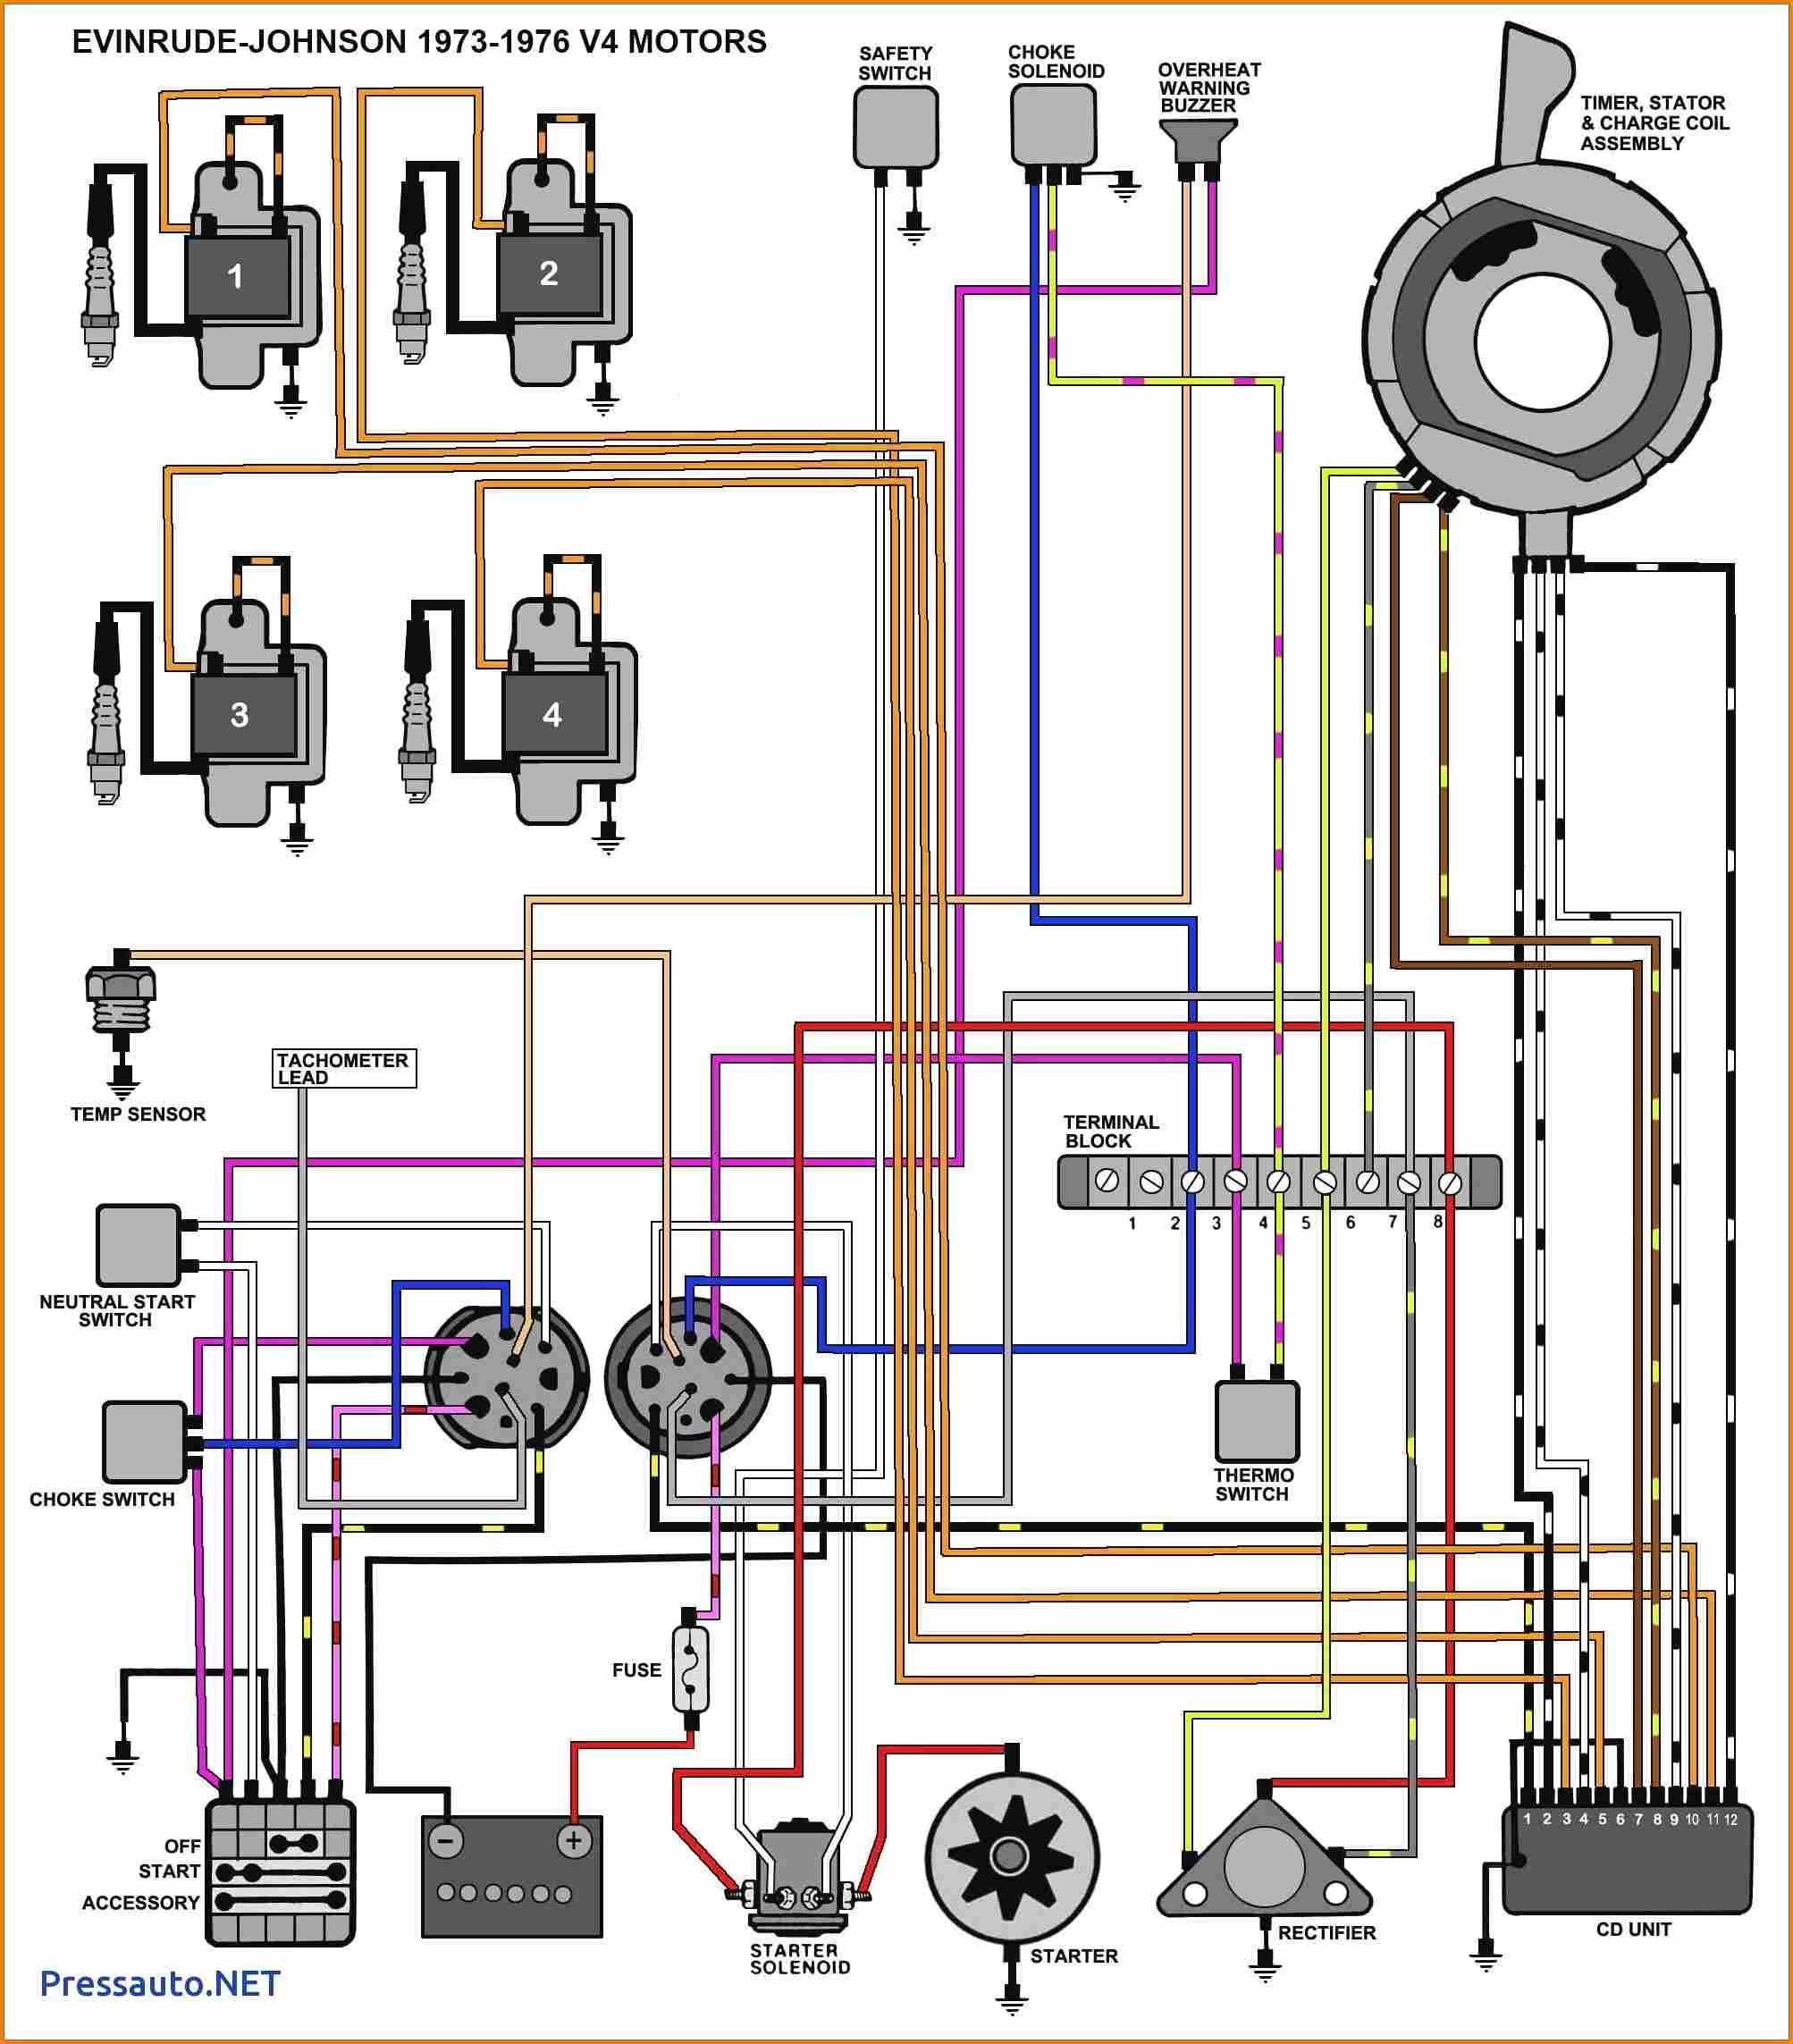 evinrude ignition switch wiring diagram Collection-johnson 1997 outboard 115 hp wiring diagram example electrical rh emilyalbert co Johnson Outboard Ignition Switch Wiring Evinrude Outboard Motor Wiring 10-m